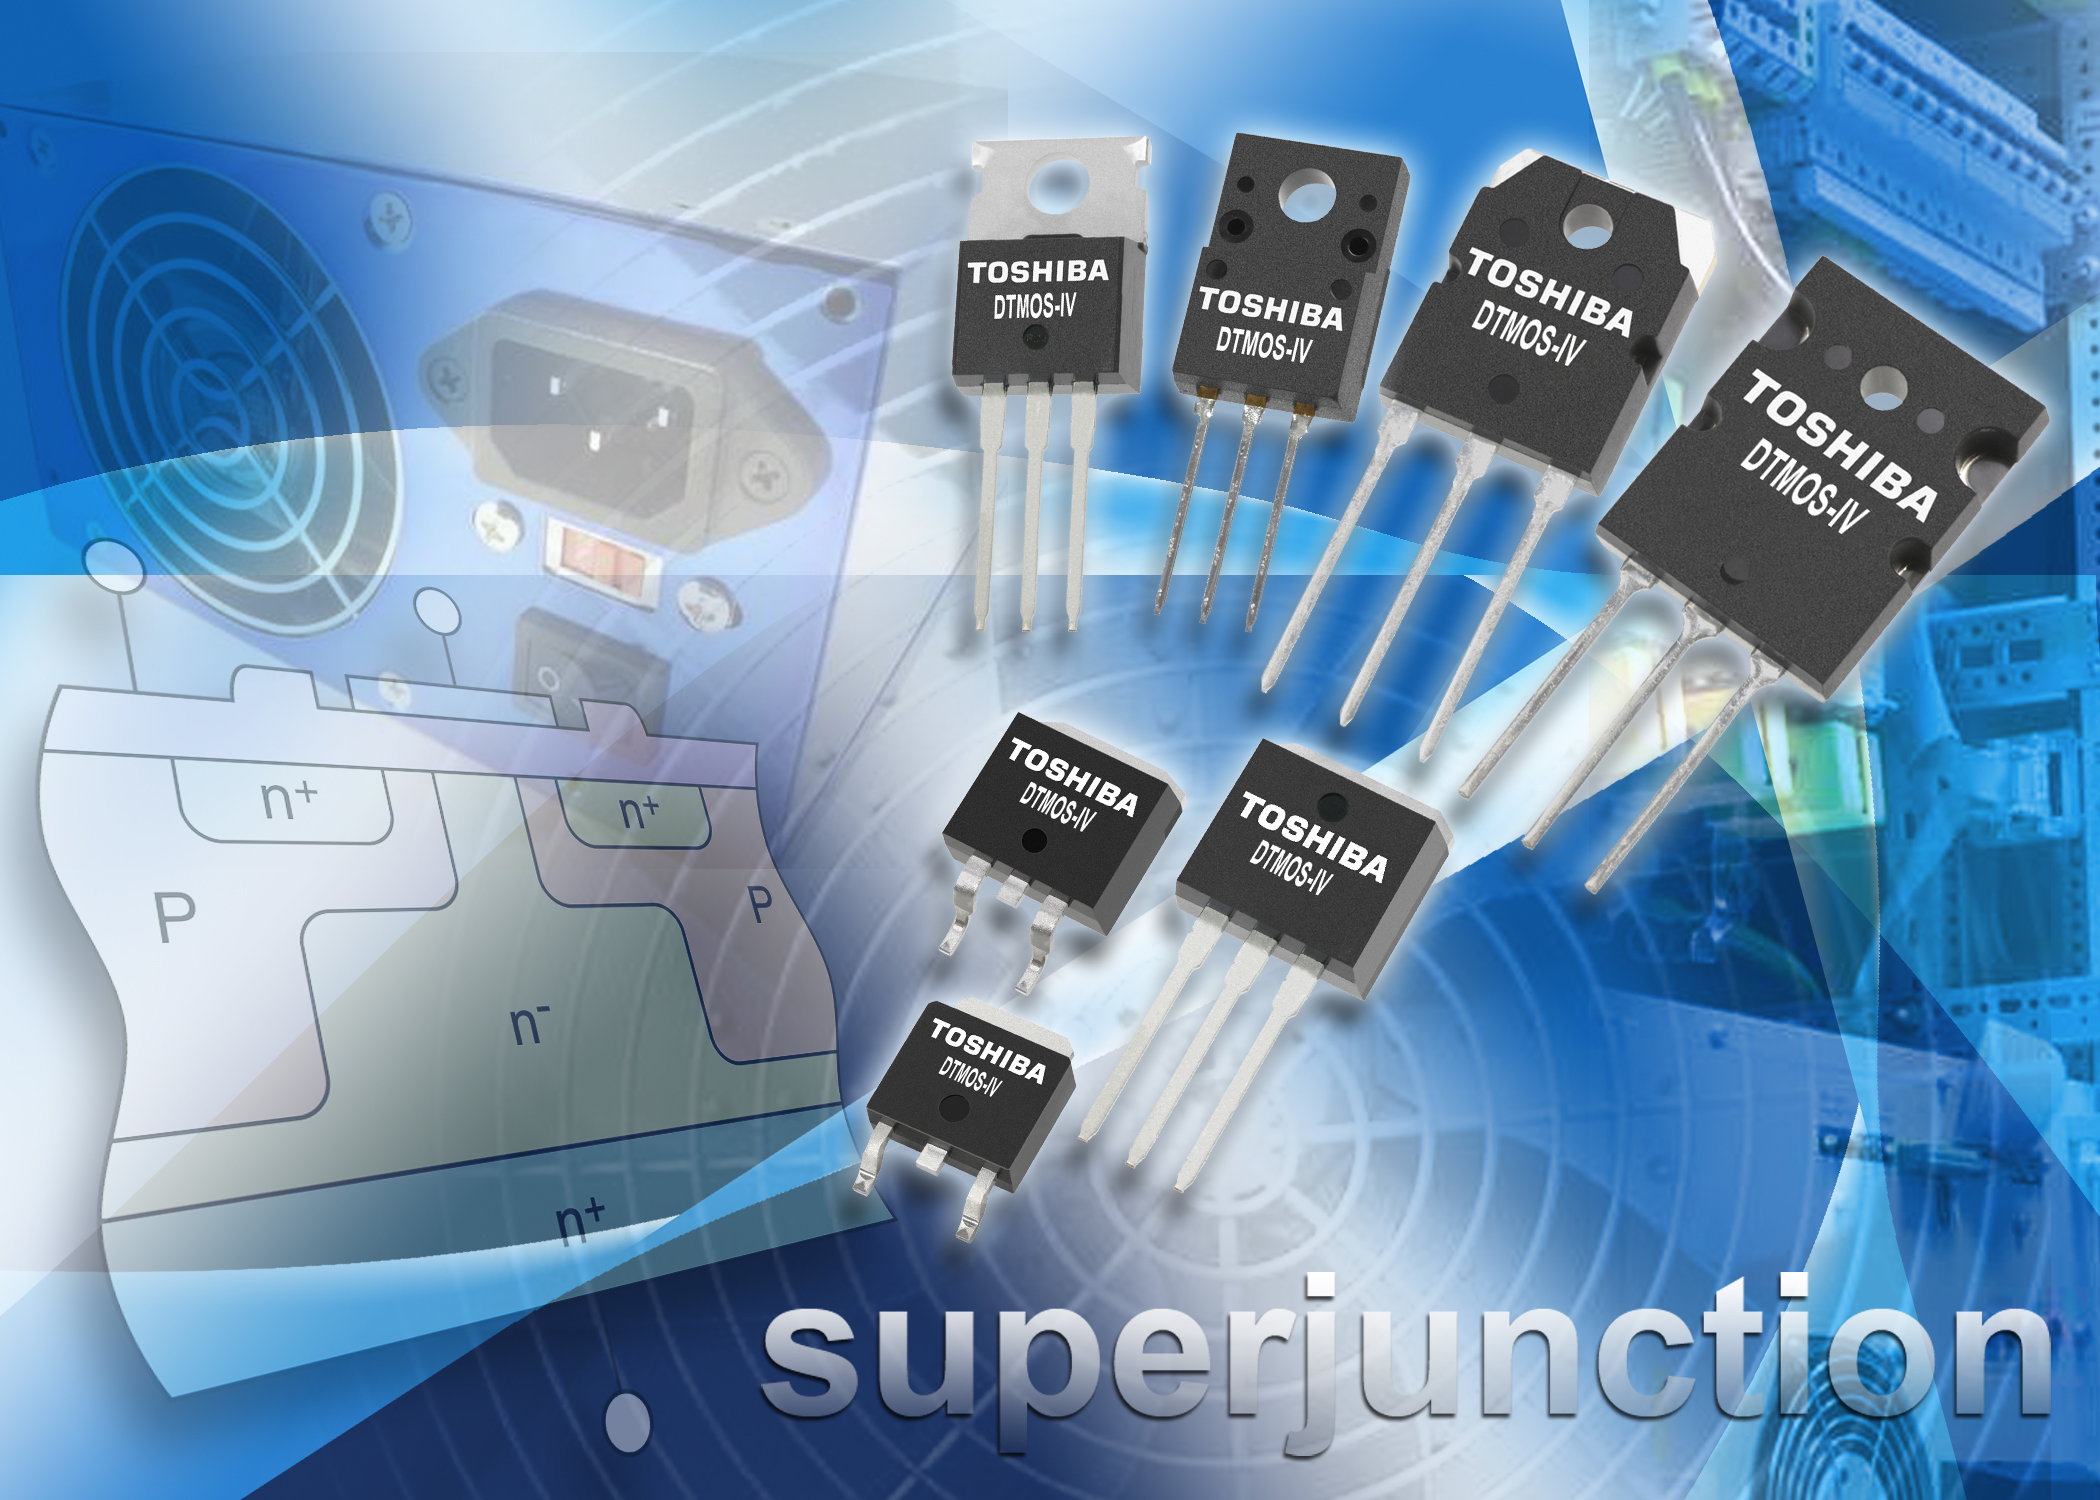 Power Systems Design Psd Information To Your Designs 5v Buck Converter Circuit Project Using Ltc3112 Dc Toshiba Announces Next Generation Superjunction Deep Trench Process Mosfets